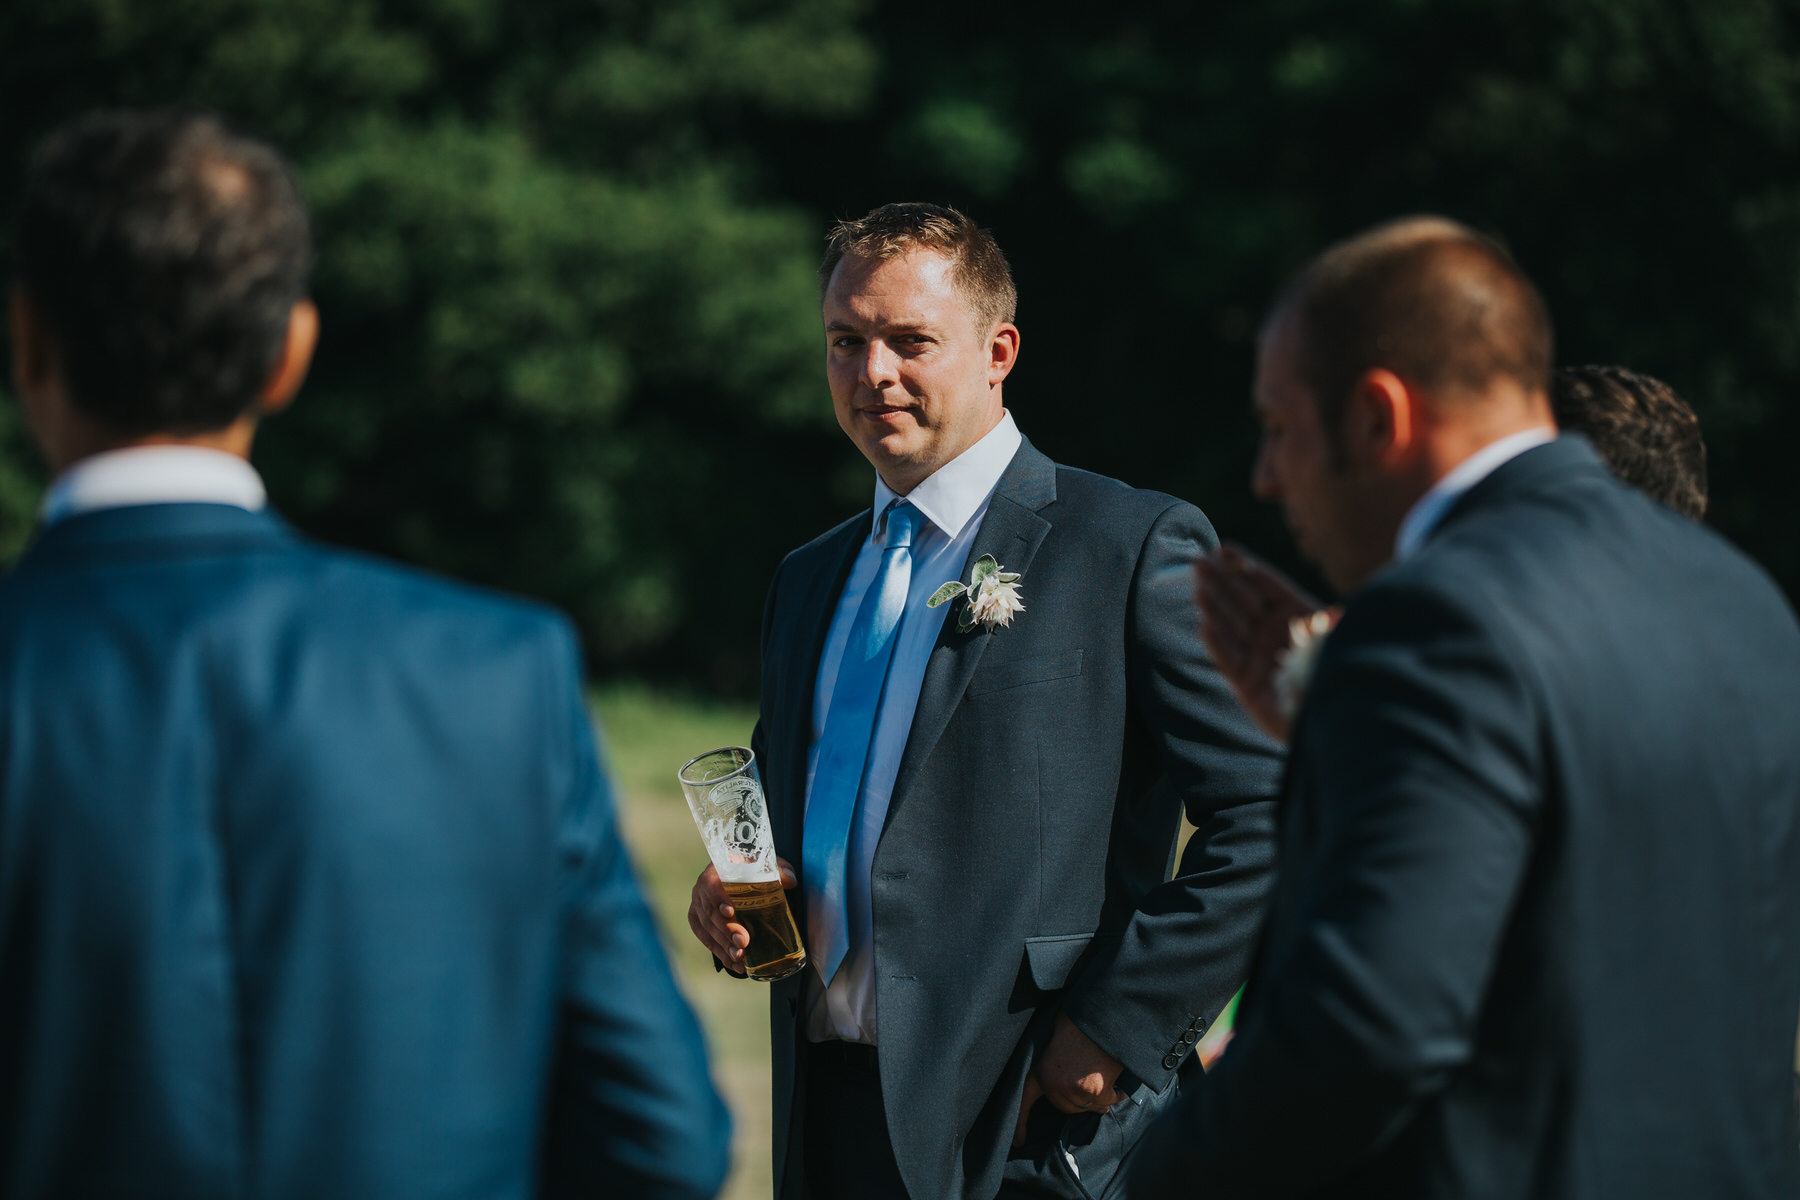 204 wedding guest reportage Knepp Castle photographer.jpg